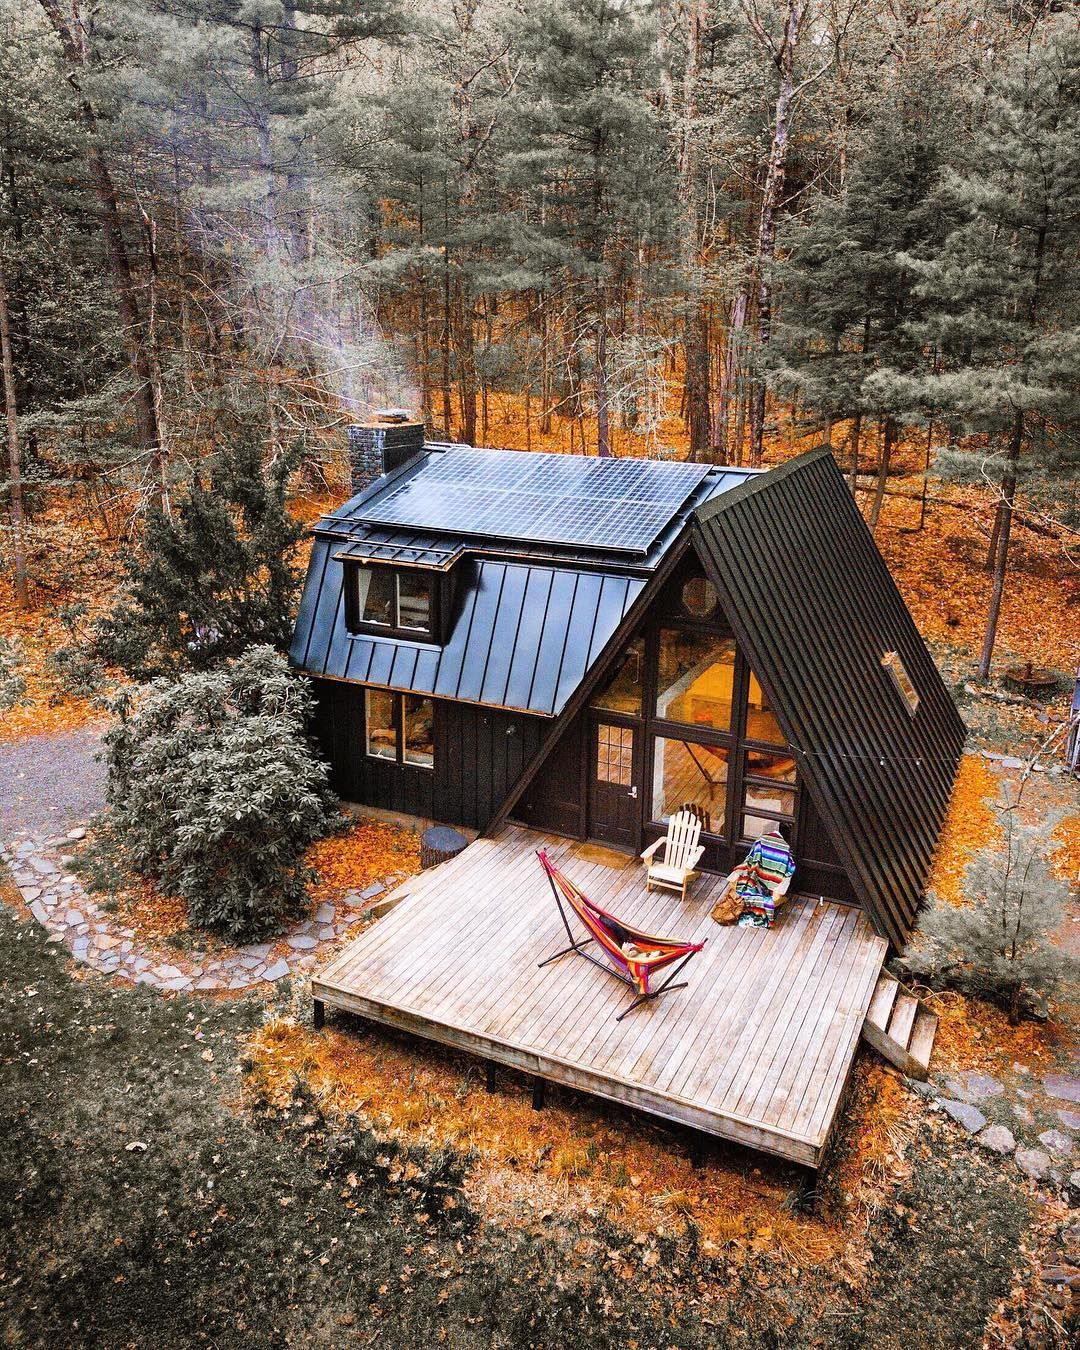 15 3 Mil Me Gusta 220 Comentarios Standard Reclaimed Standardreclaimed En Instagram Is This Your St Tiny House Design A Frame House Cabins In The Woods